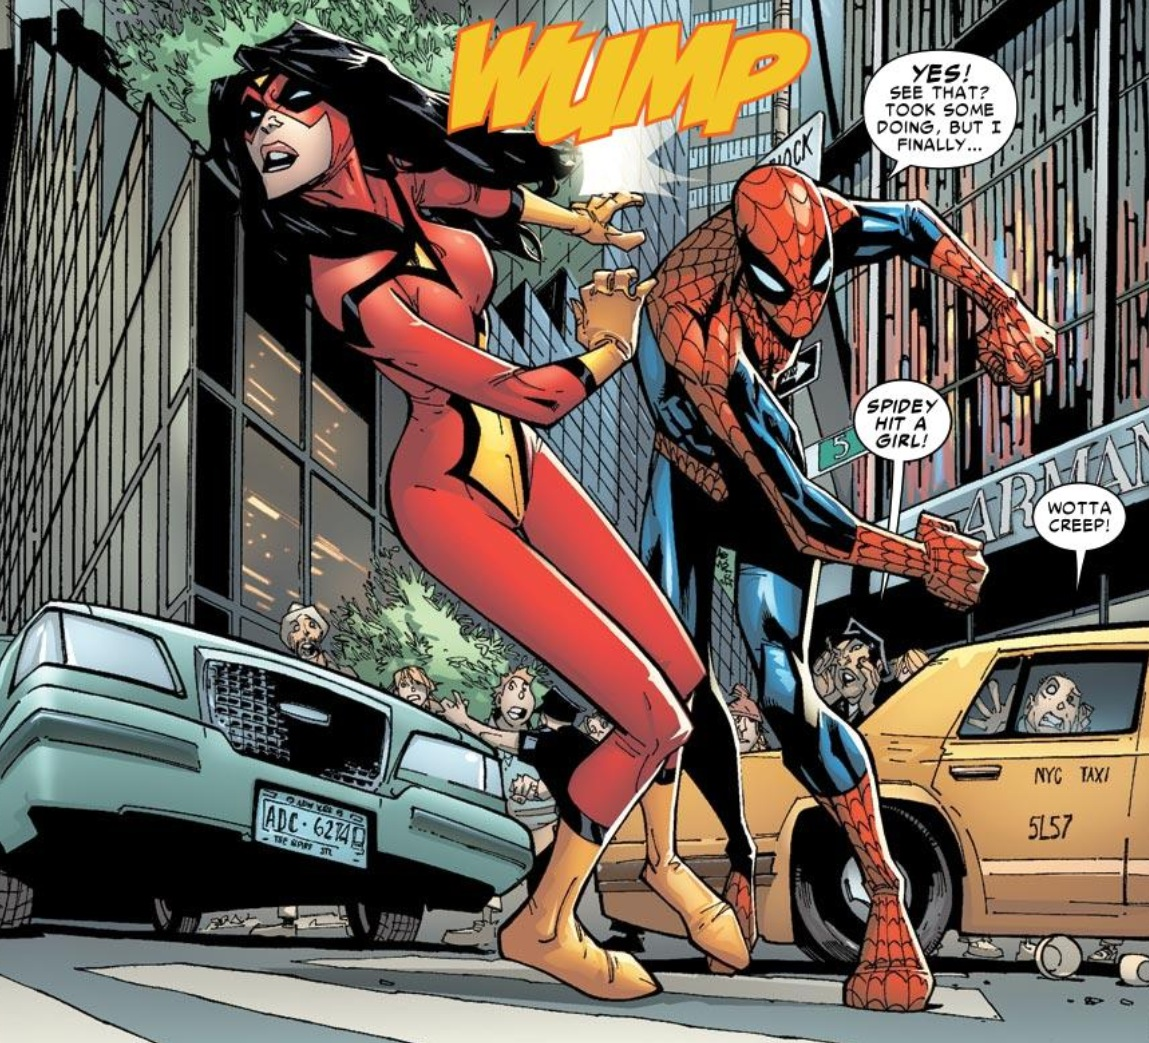 Free Comic Book Day Amazing Spider Man: New Issues: Free Comic Book Day Spider-Man